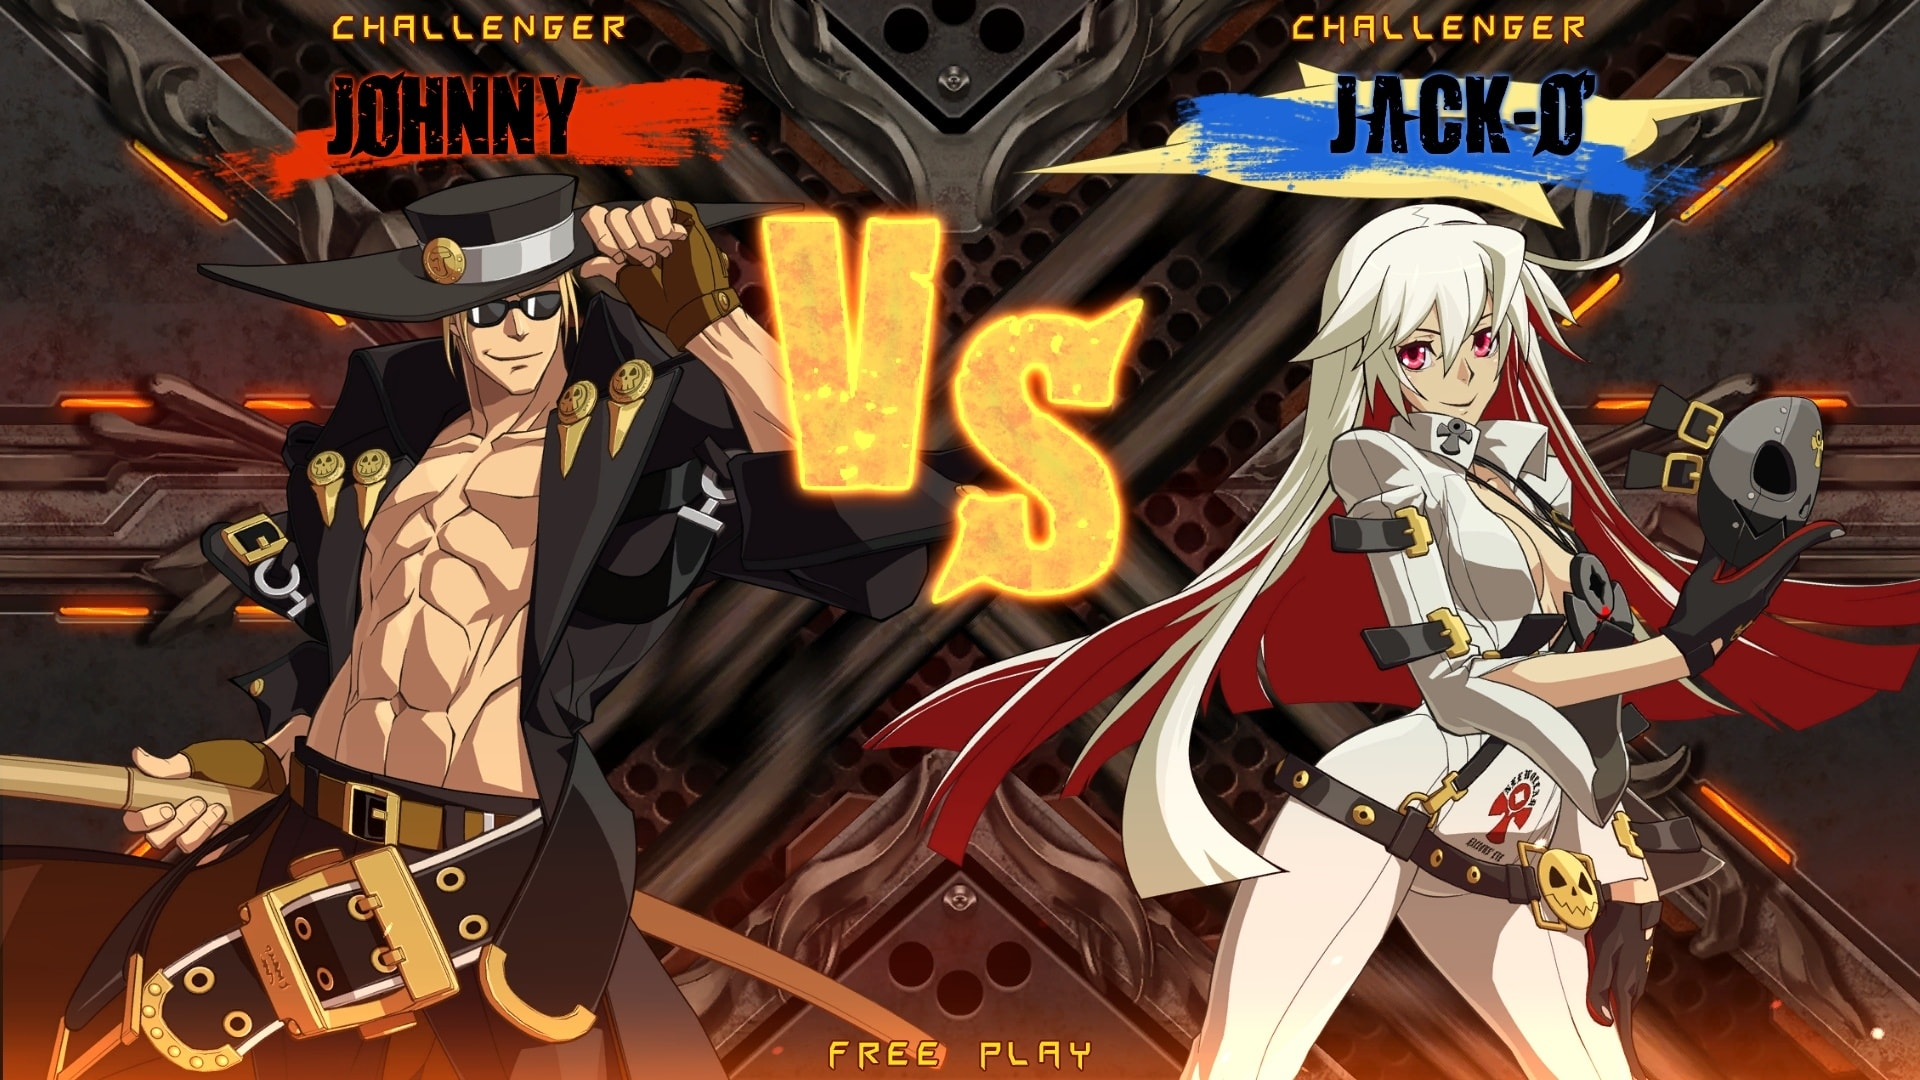 Guilty Gear: Johnny Sfondi Desktop wallpapers